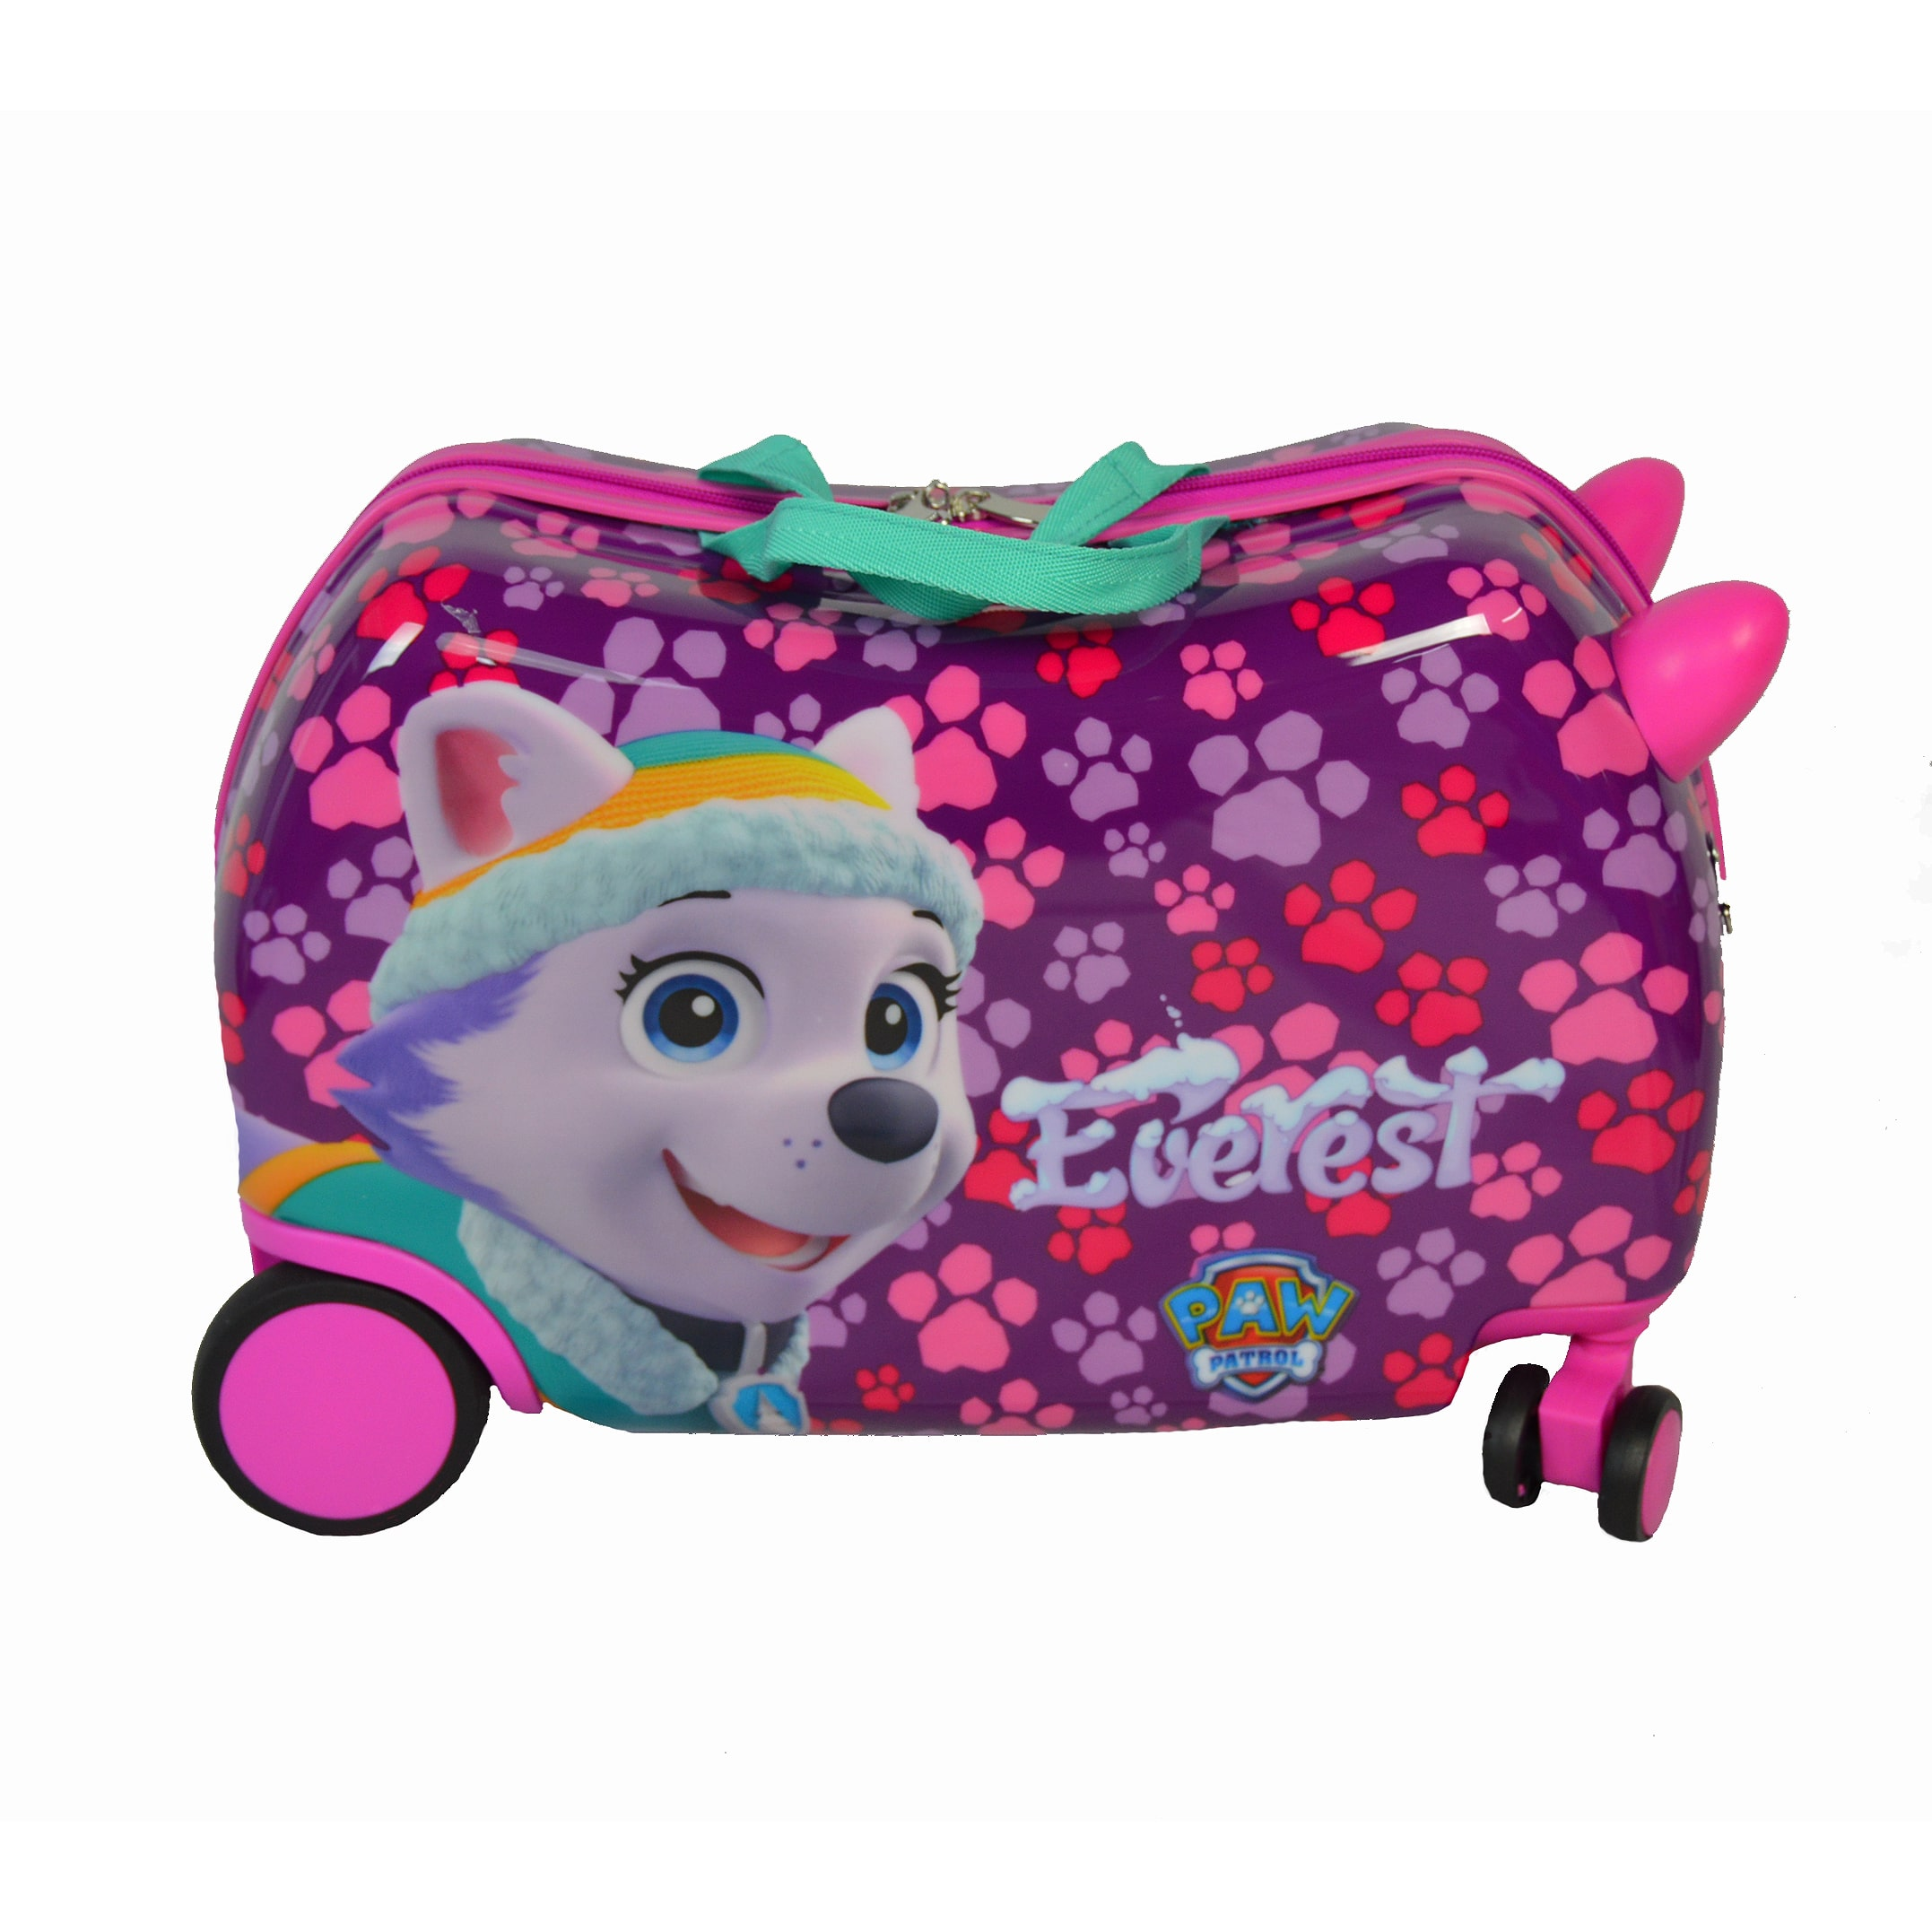 "AMERICAS TRAVEL MERCHANDISE Paw Patrol Cruizer ""Everest & Skye"" Ride-On 16-inch Hardside Rolling Suitcase"